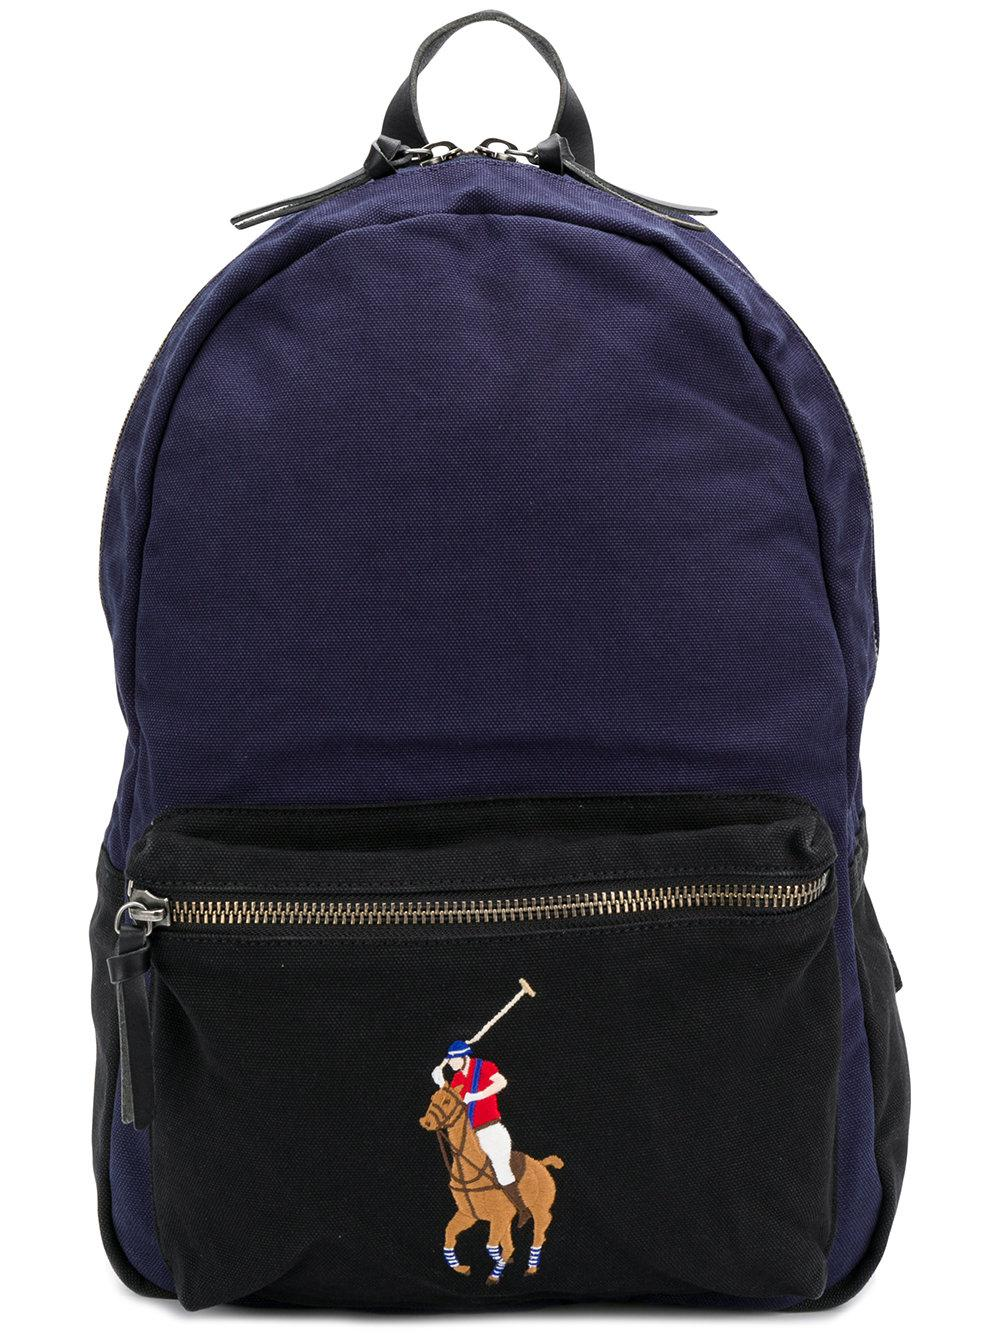 Lyst - Polo Ralph Lauren Logo Printed Backpack in Black for Men 2d630480c6